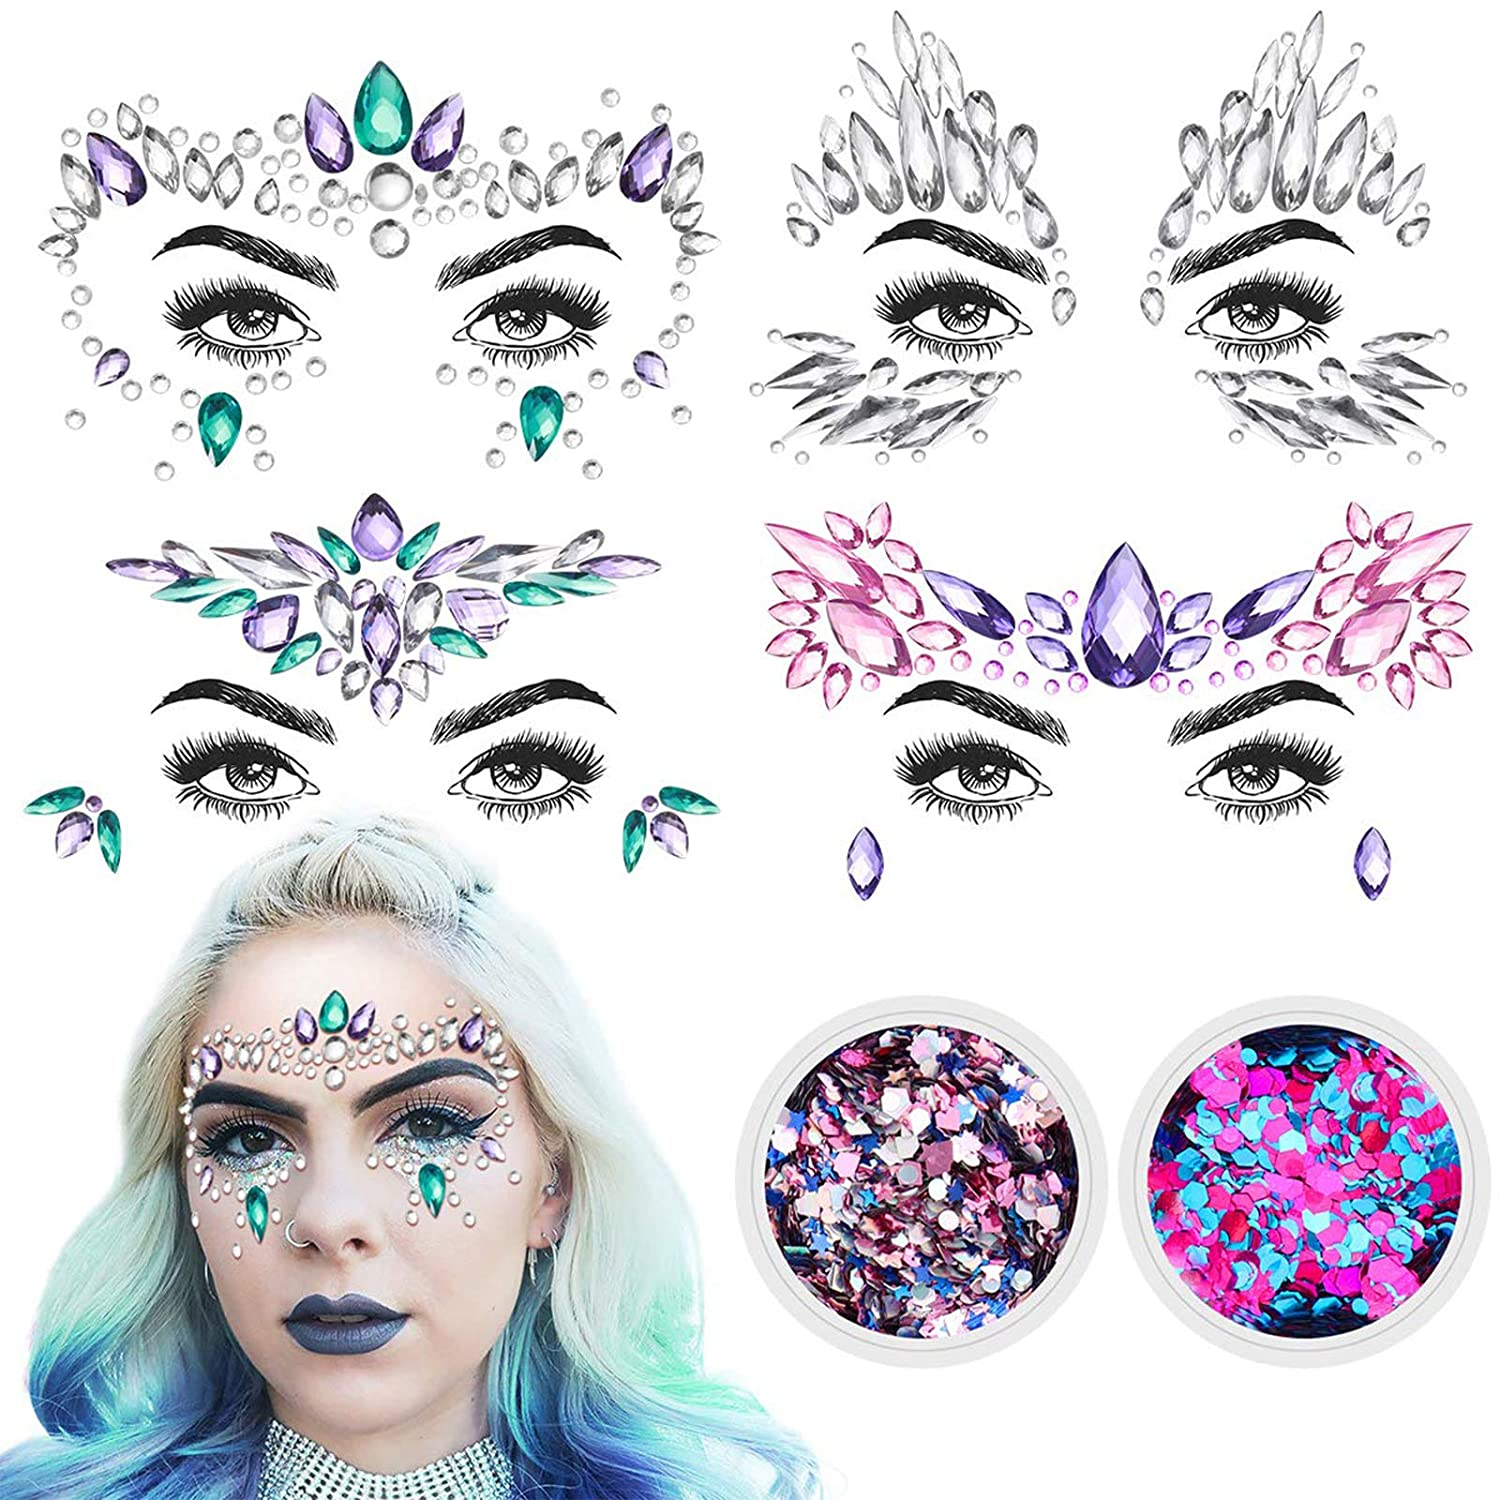 Diamond Face, 4 Sets Women Mermaid Face Jewels Face Gems & 2 Face Glitter Face Stickers Temporary Stickers